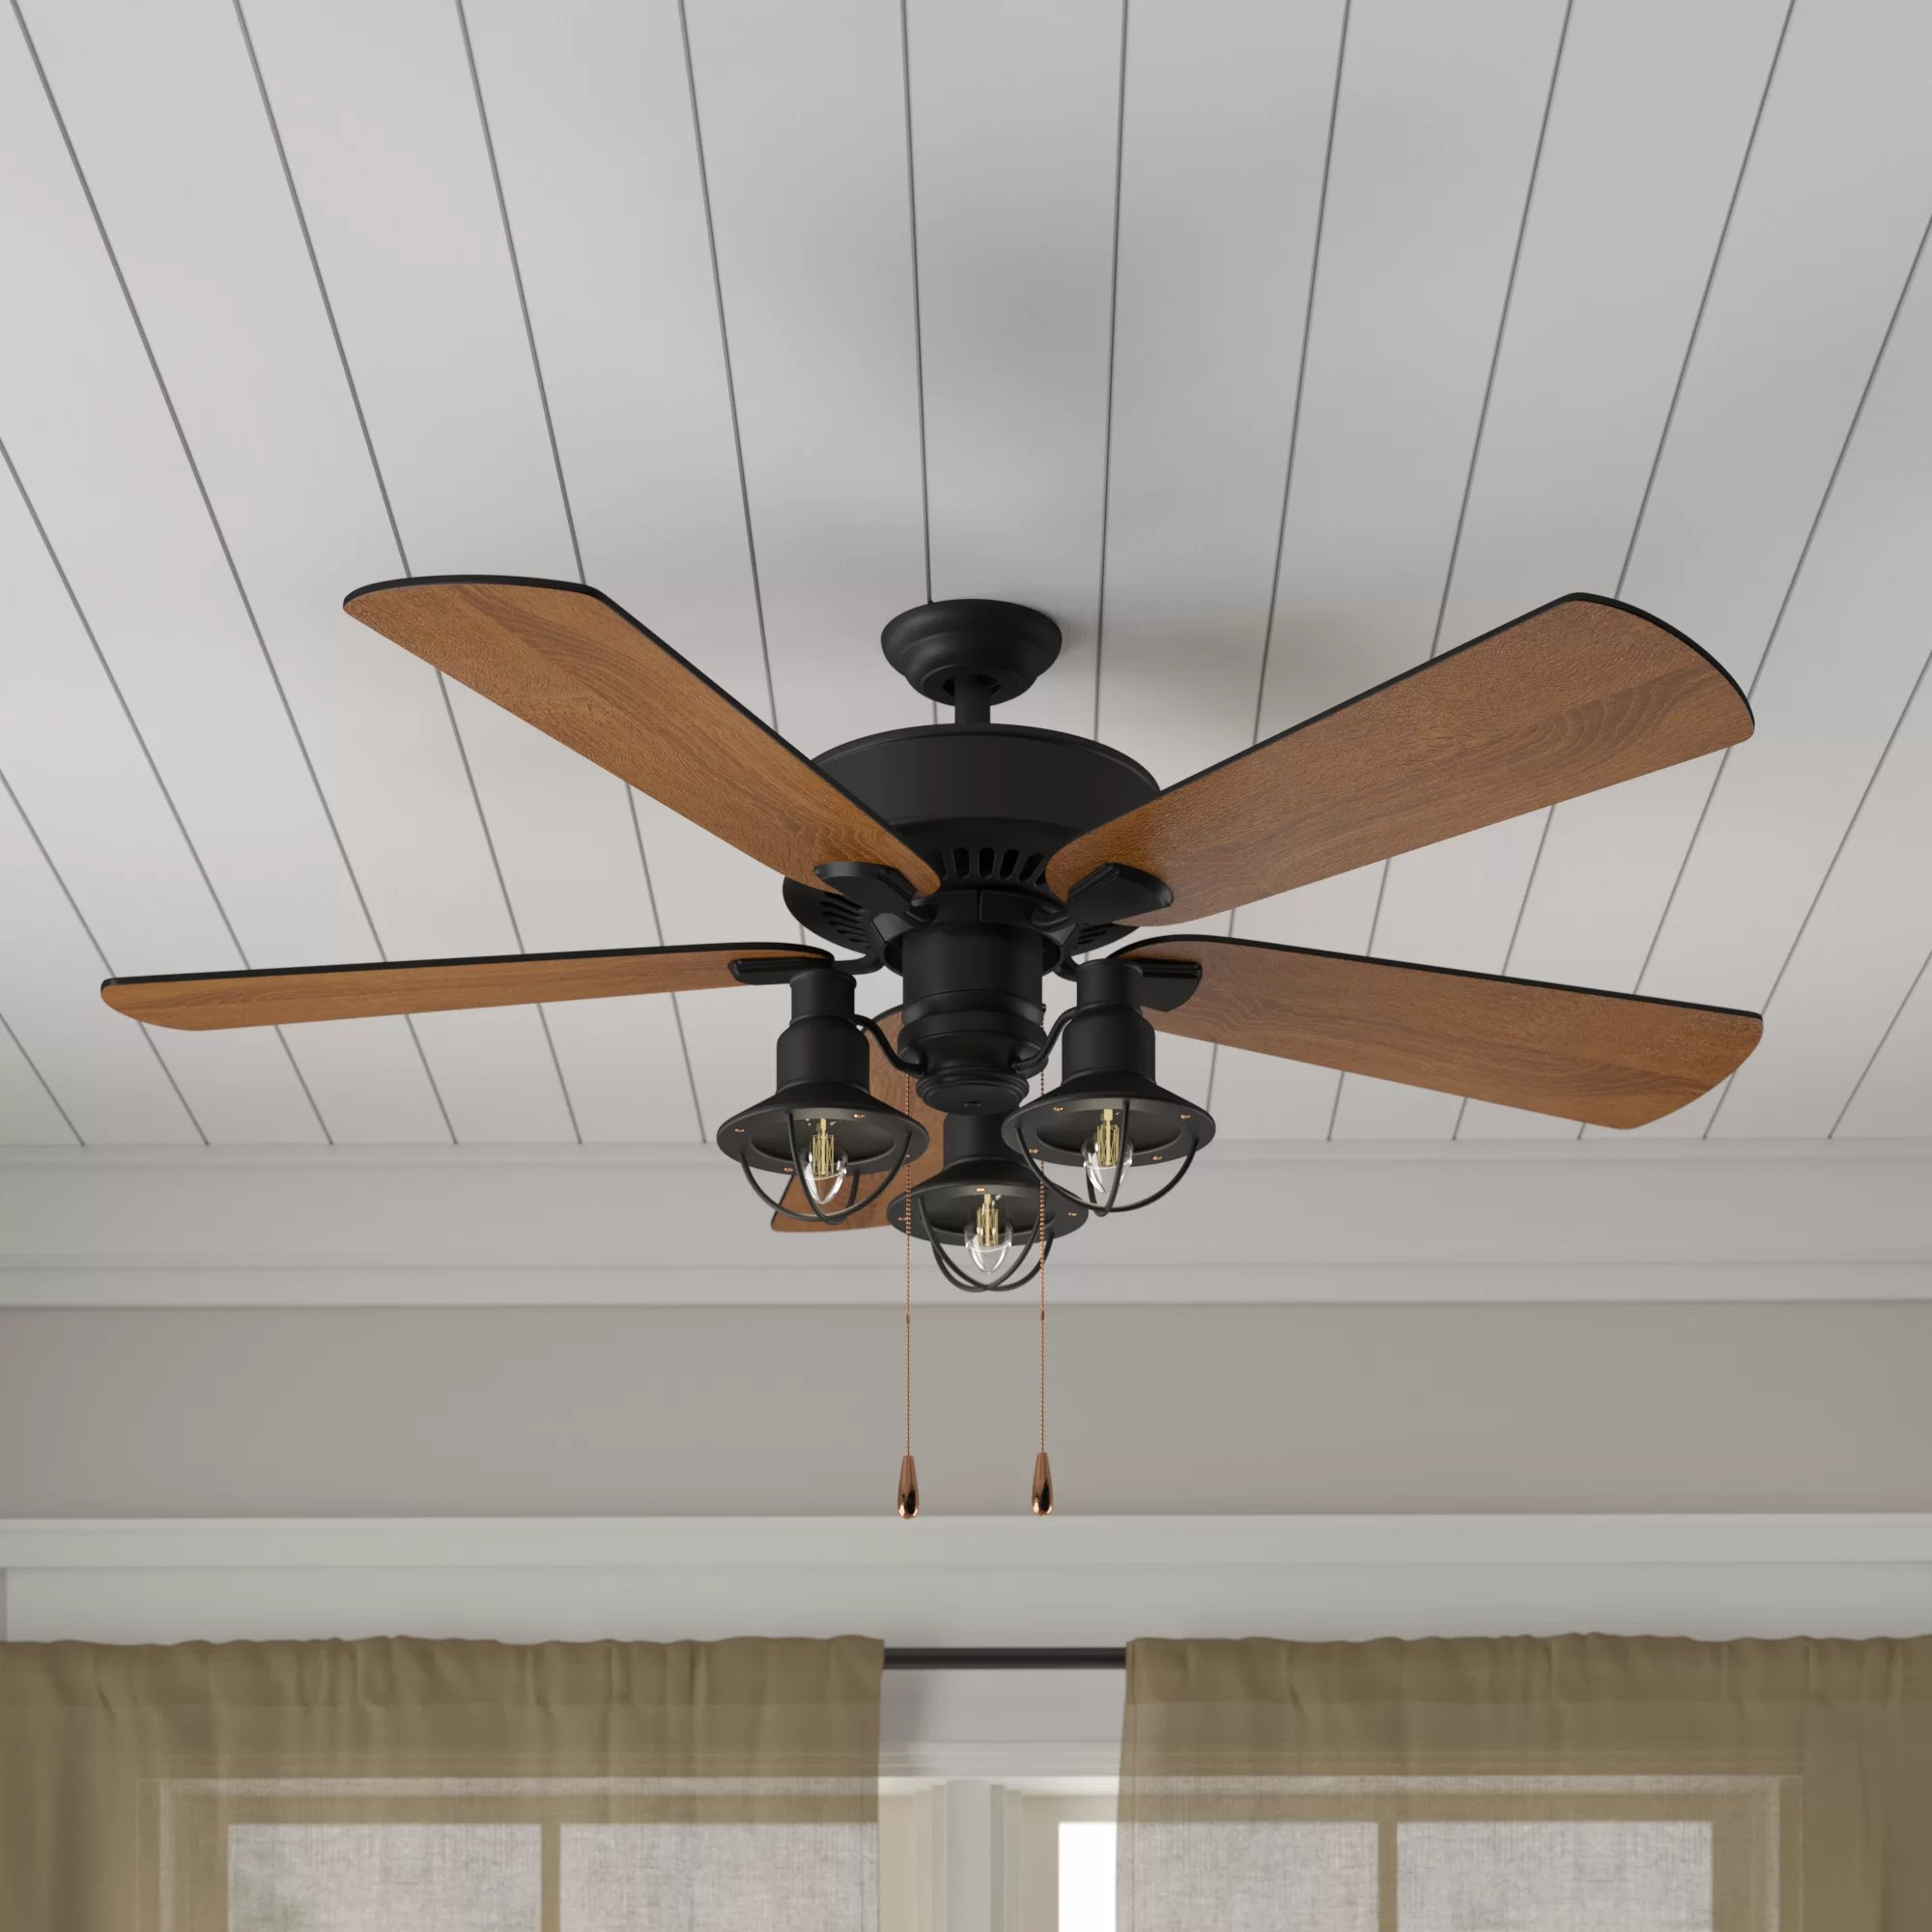 hight resolution of birch lane heritage 52 ravello 5 blade led ceiling fan light kit included reviews birch lane